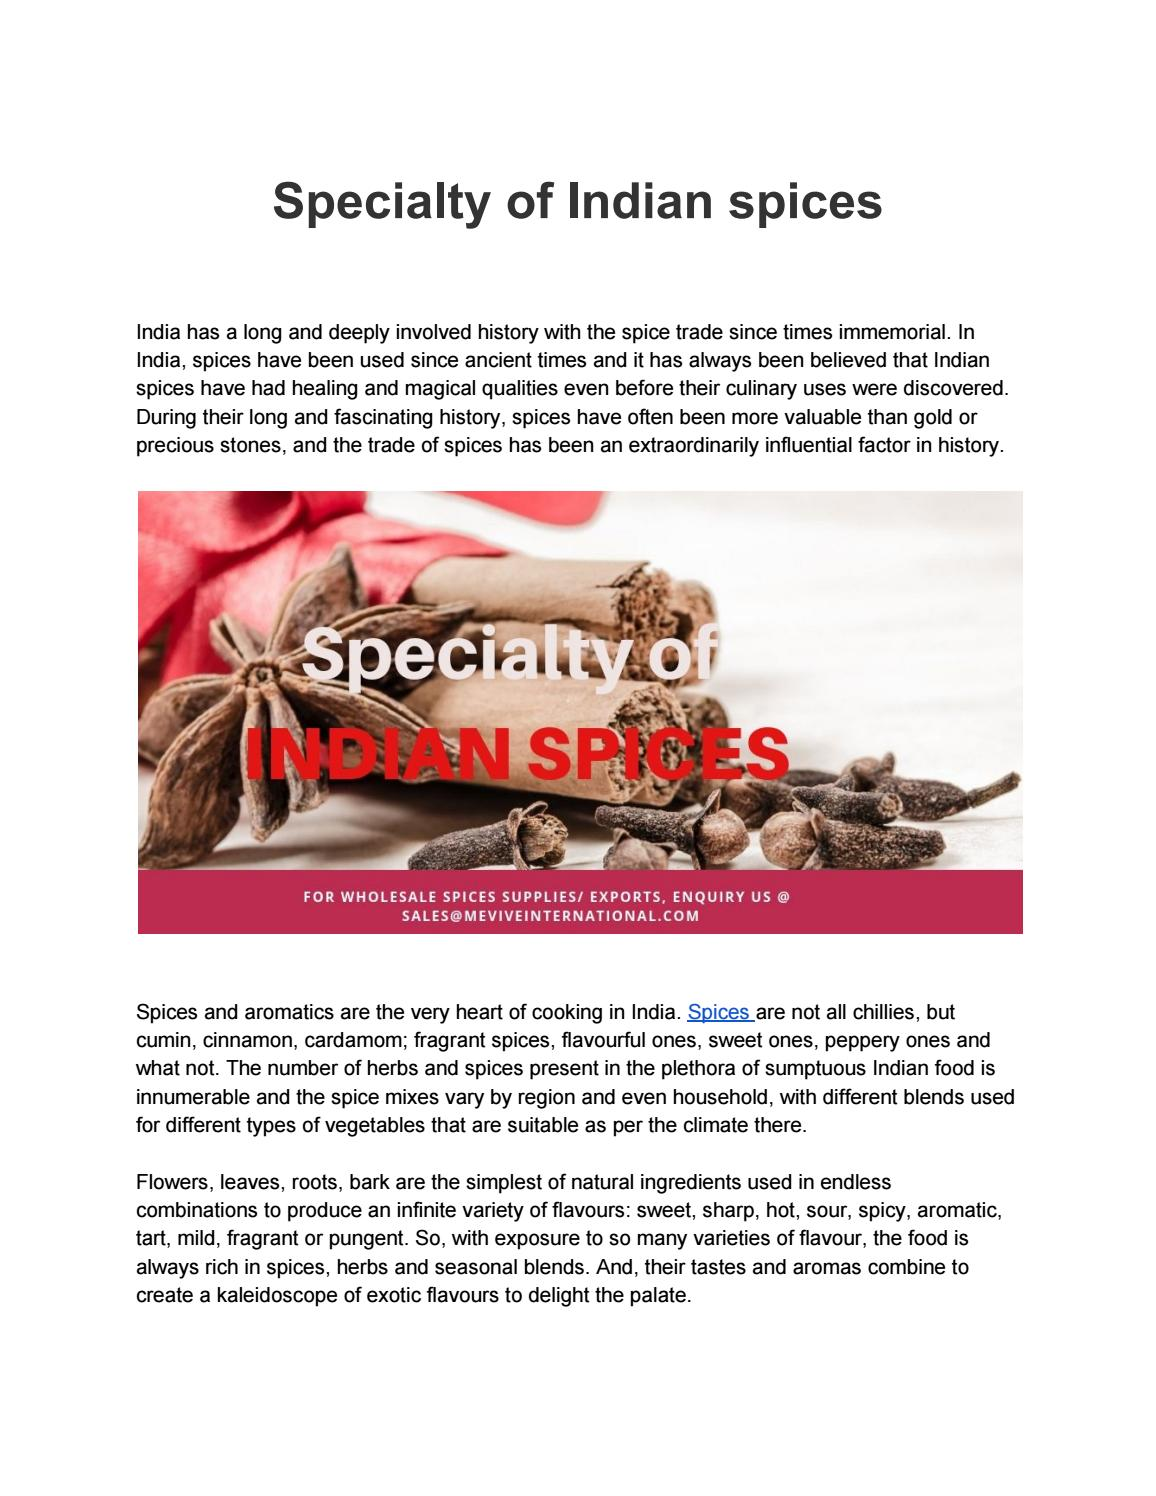 Specialty of Indian spices by Mevive international- food ingredients